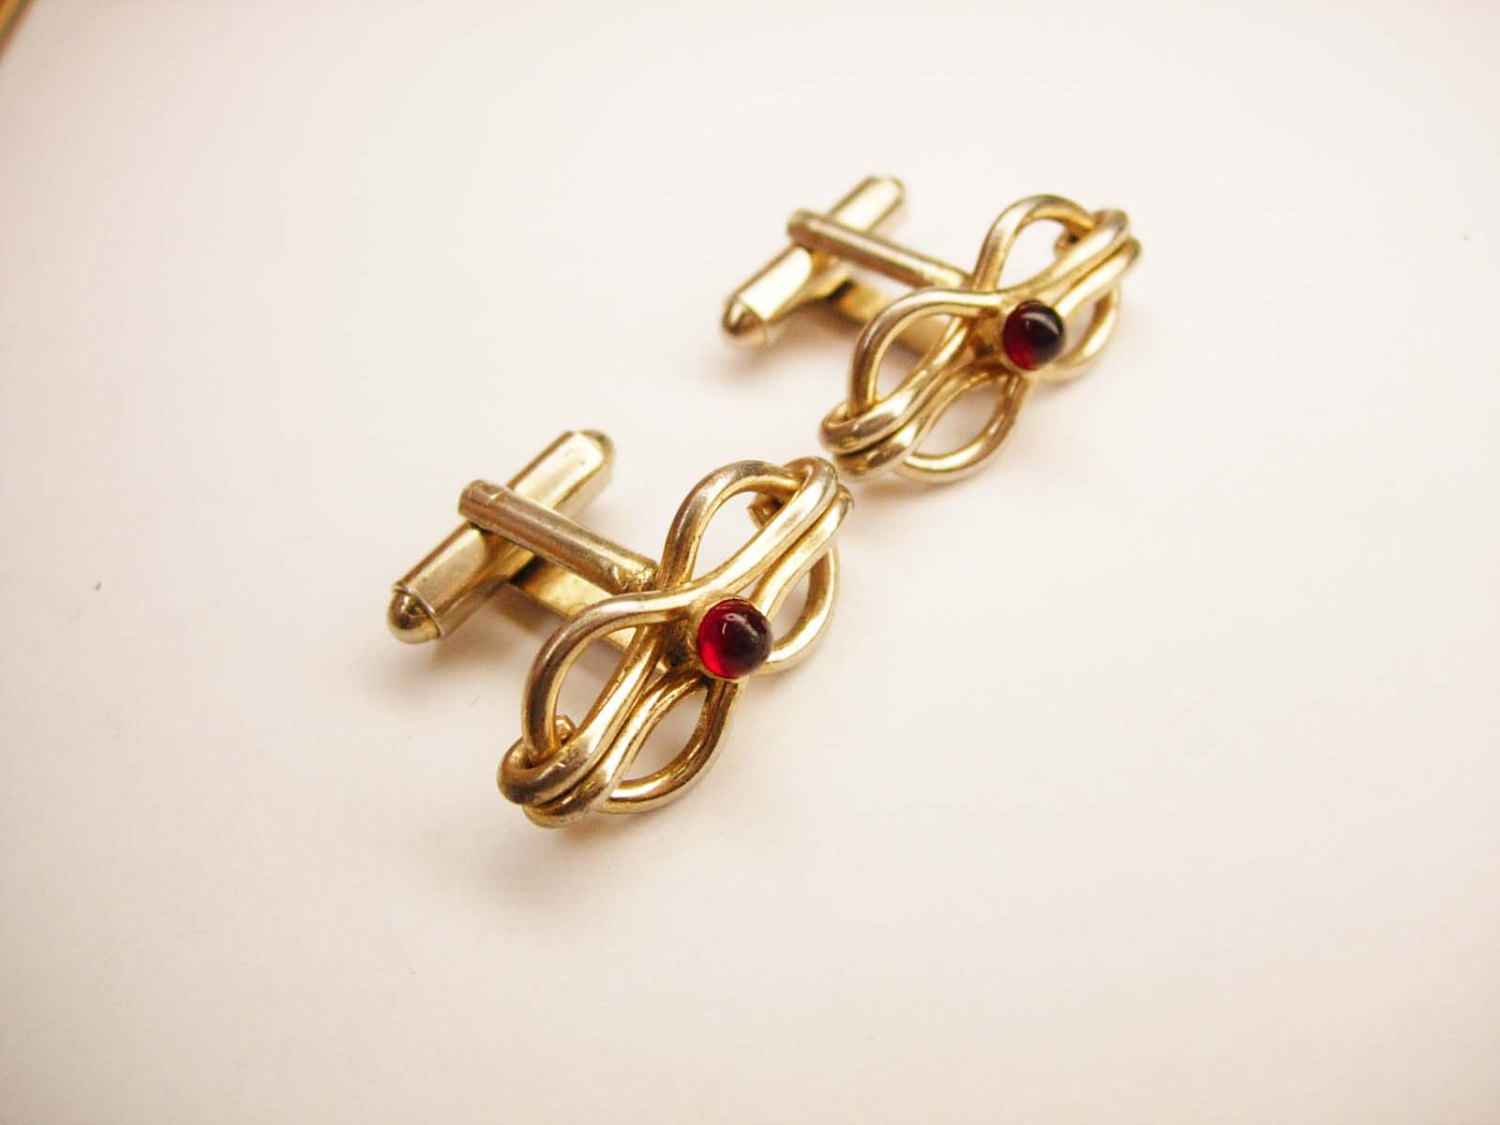 Vintage swank square knot cufflinks red jewel business for What is swank jewelry